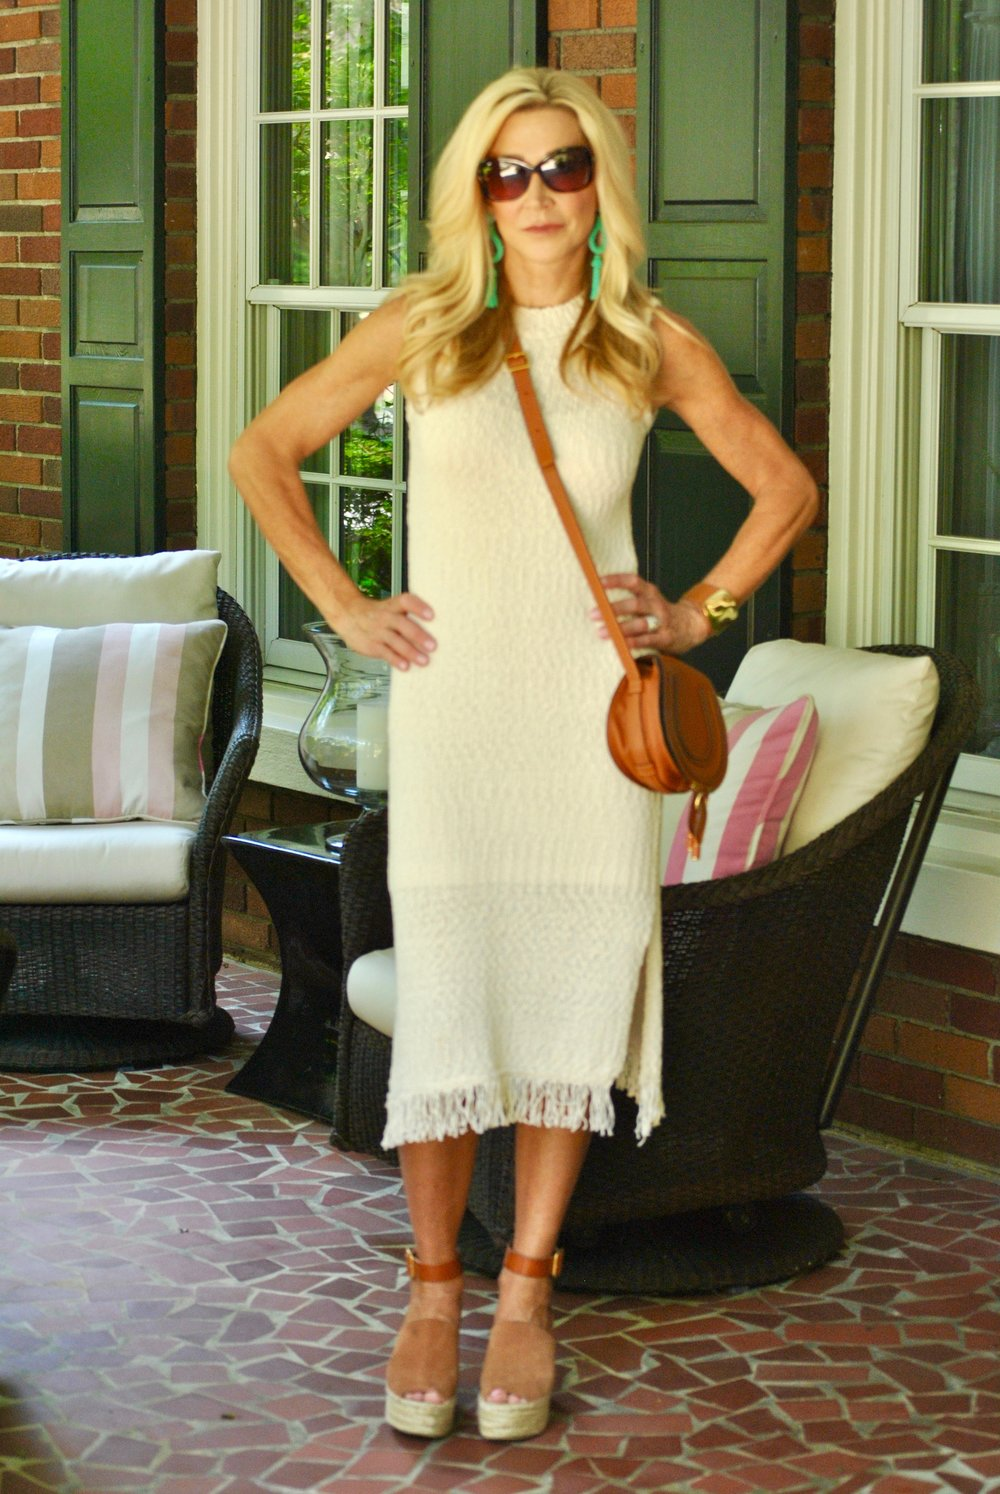 Anthropologie dress, Chloe espadrilles and Chloe bag